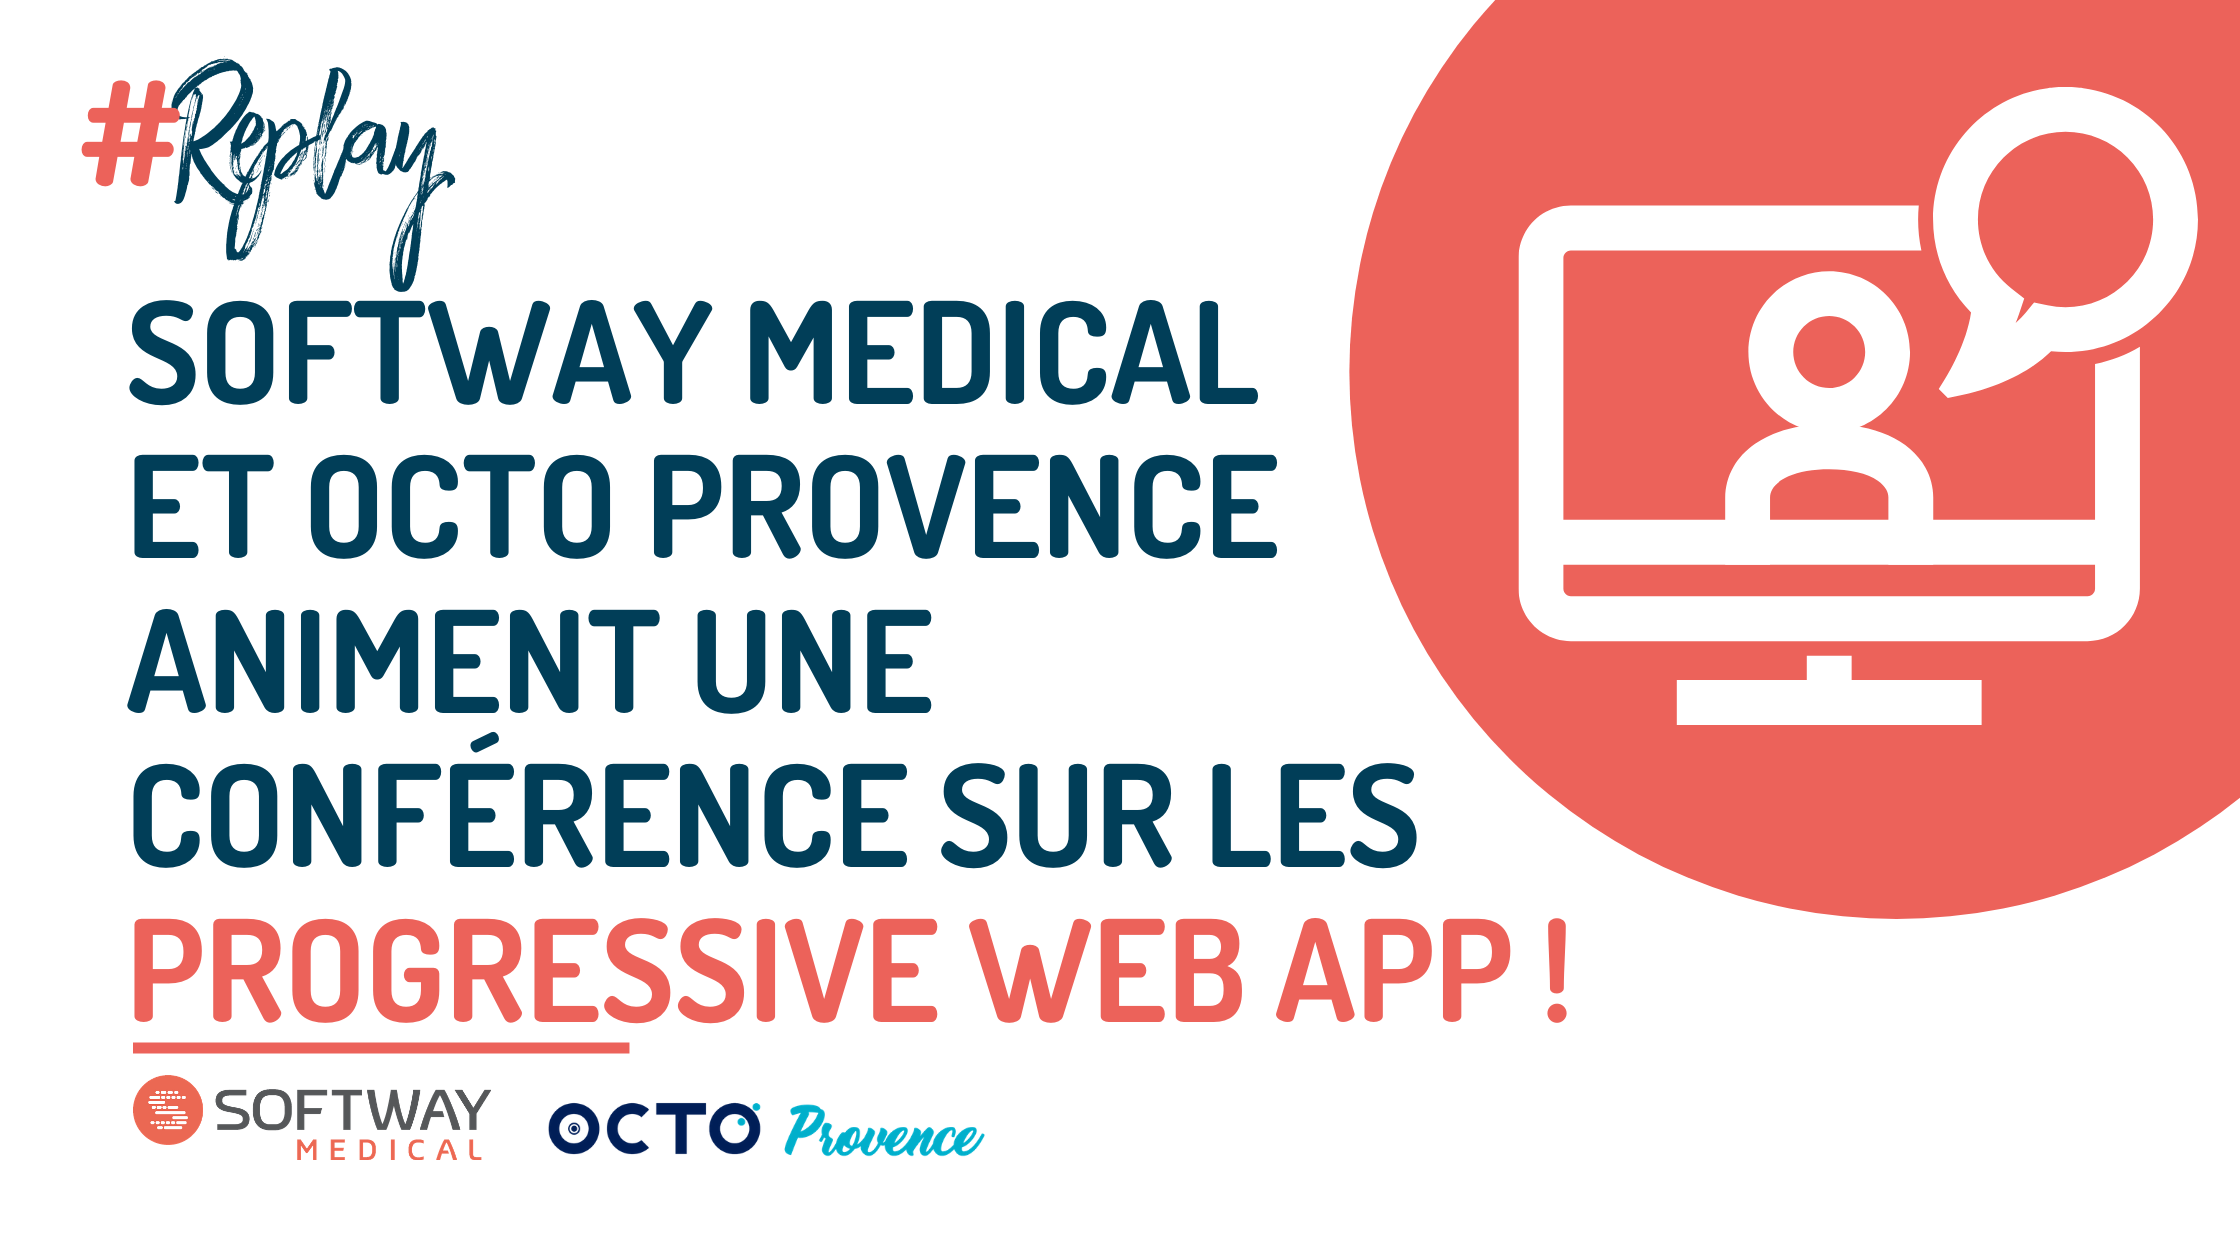 Replay : Softway Medical et Octo Provence animent une conférence sur les Progressive Web App !